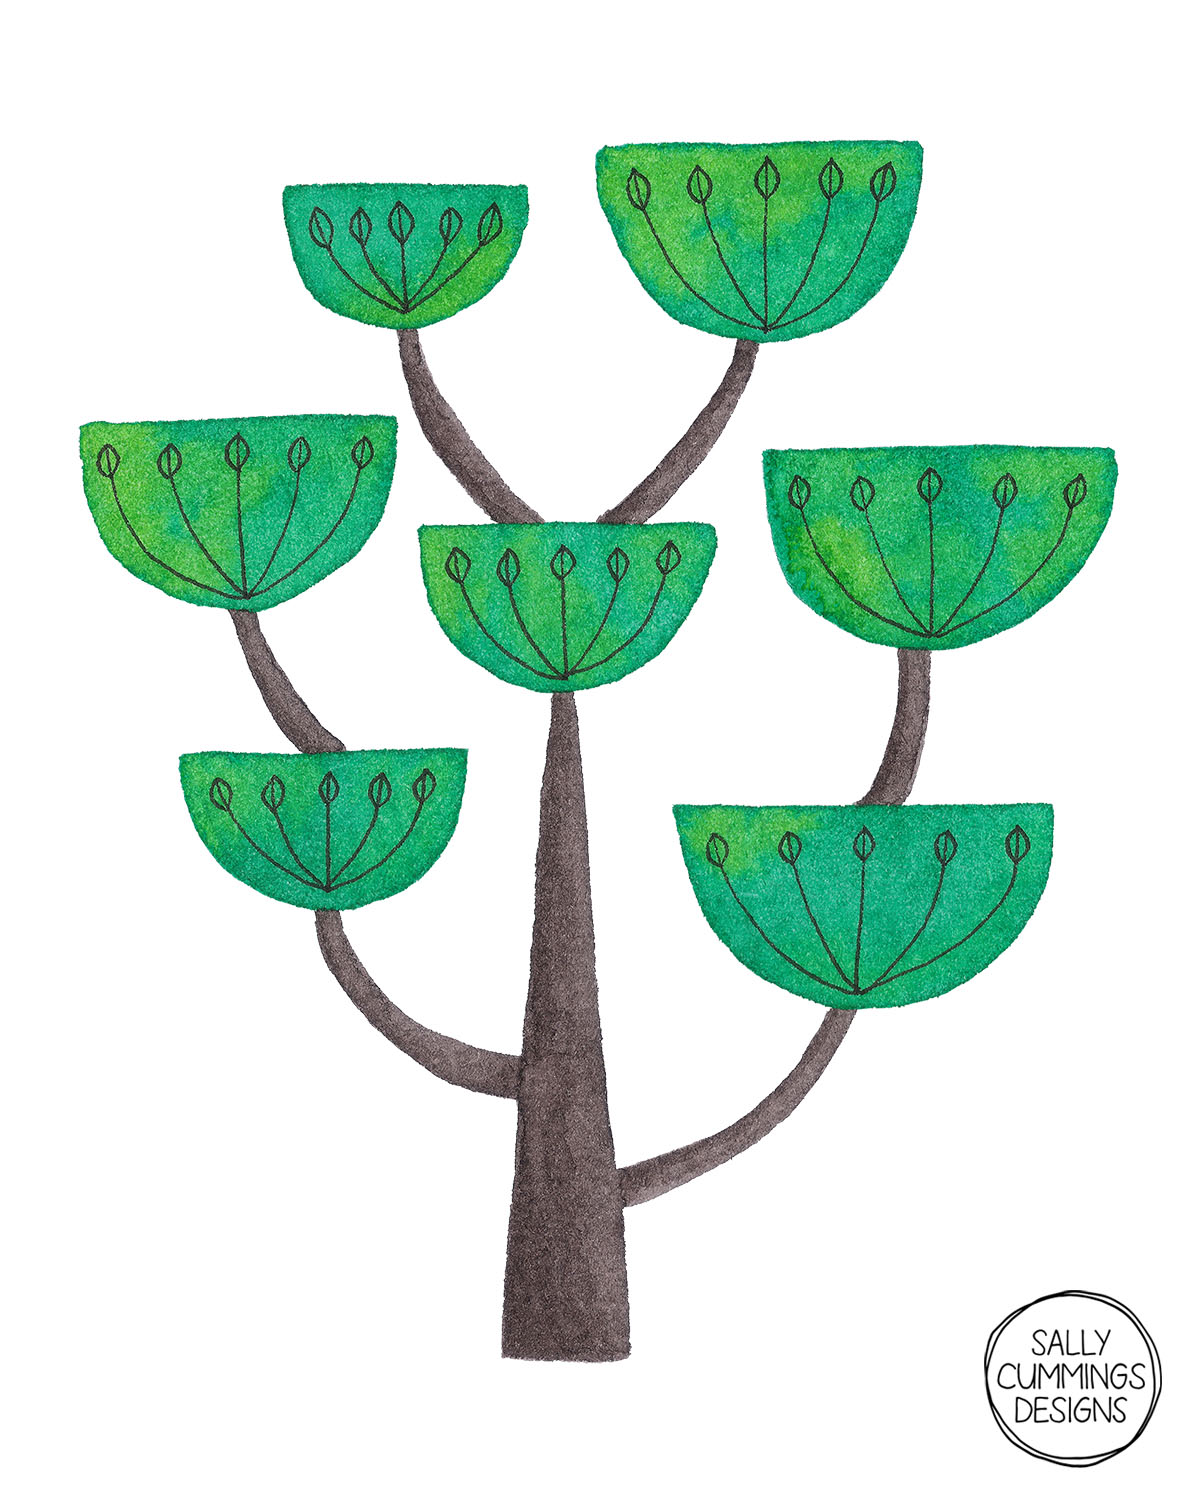 Sally Cummings Designs - Chalice Tree